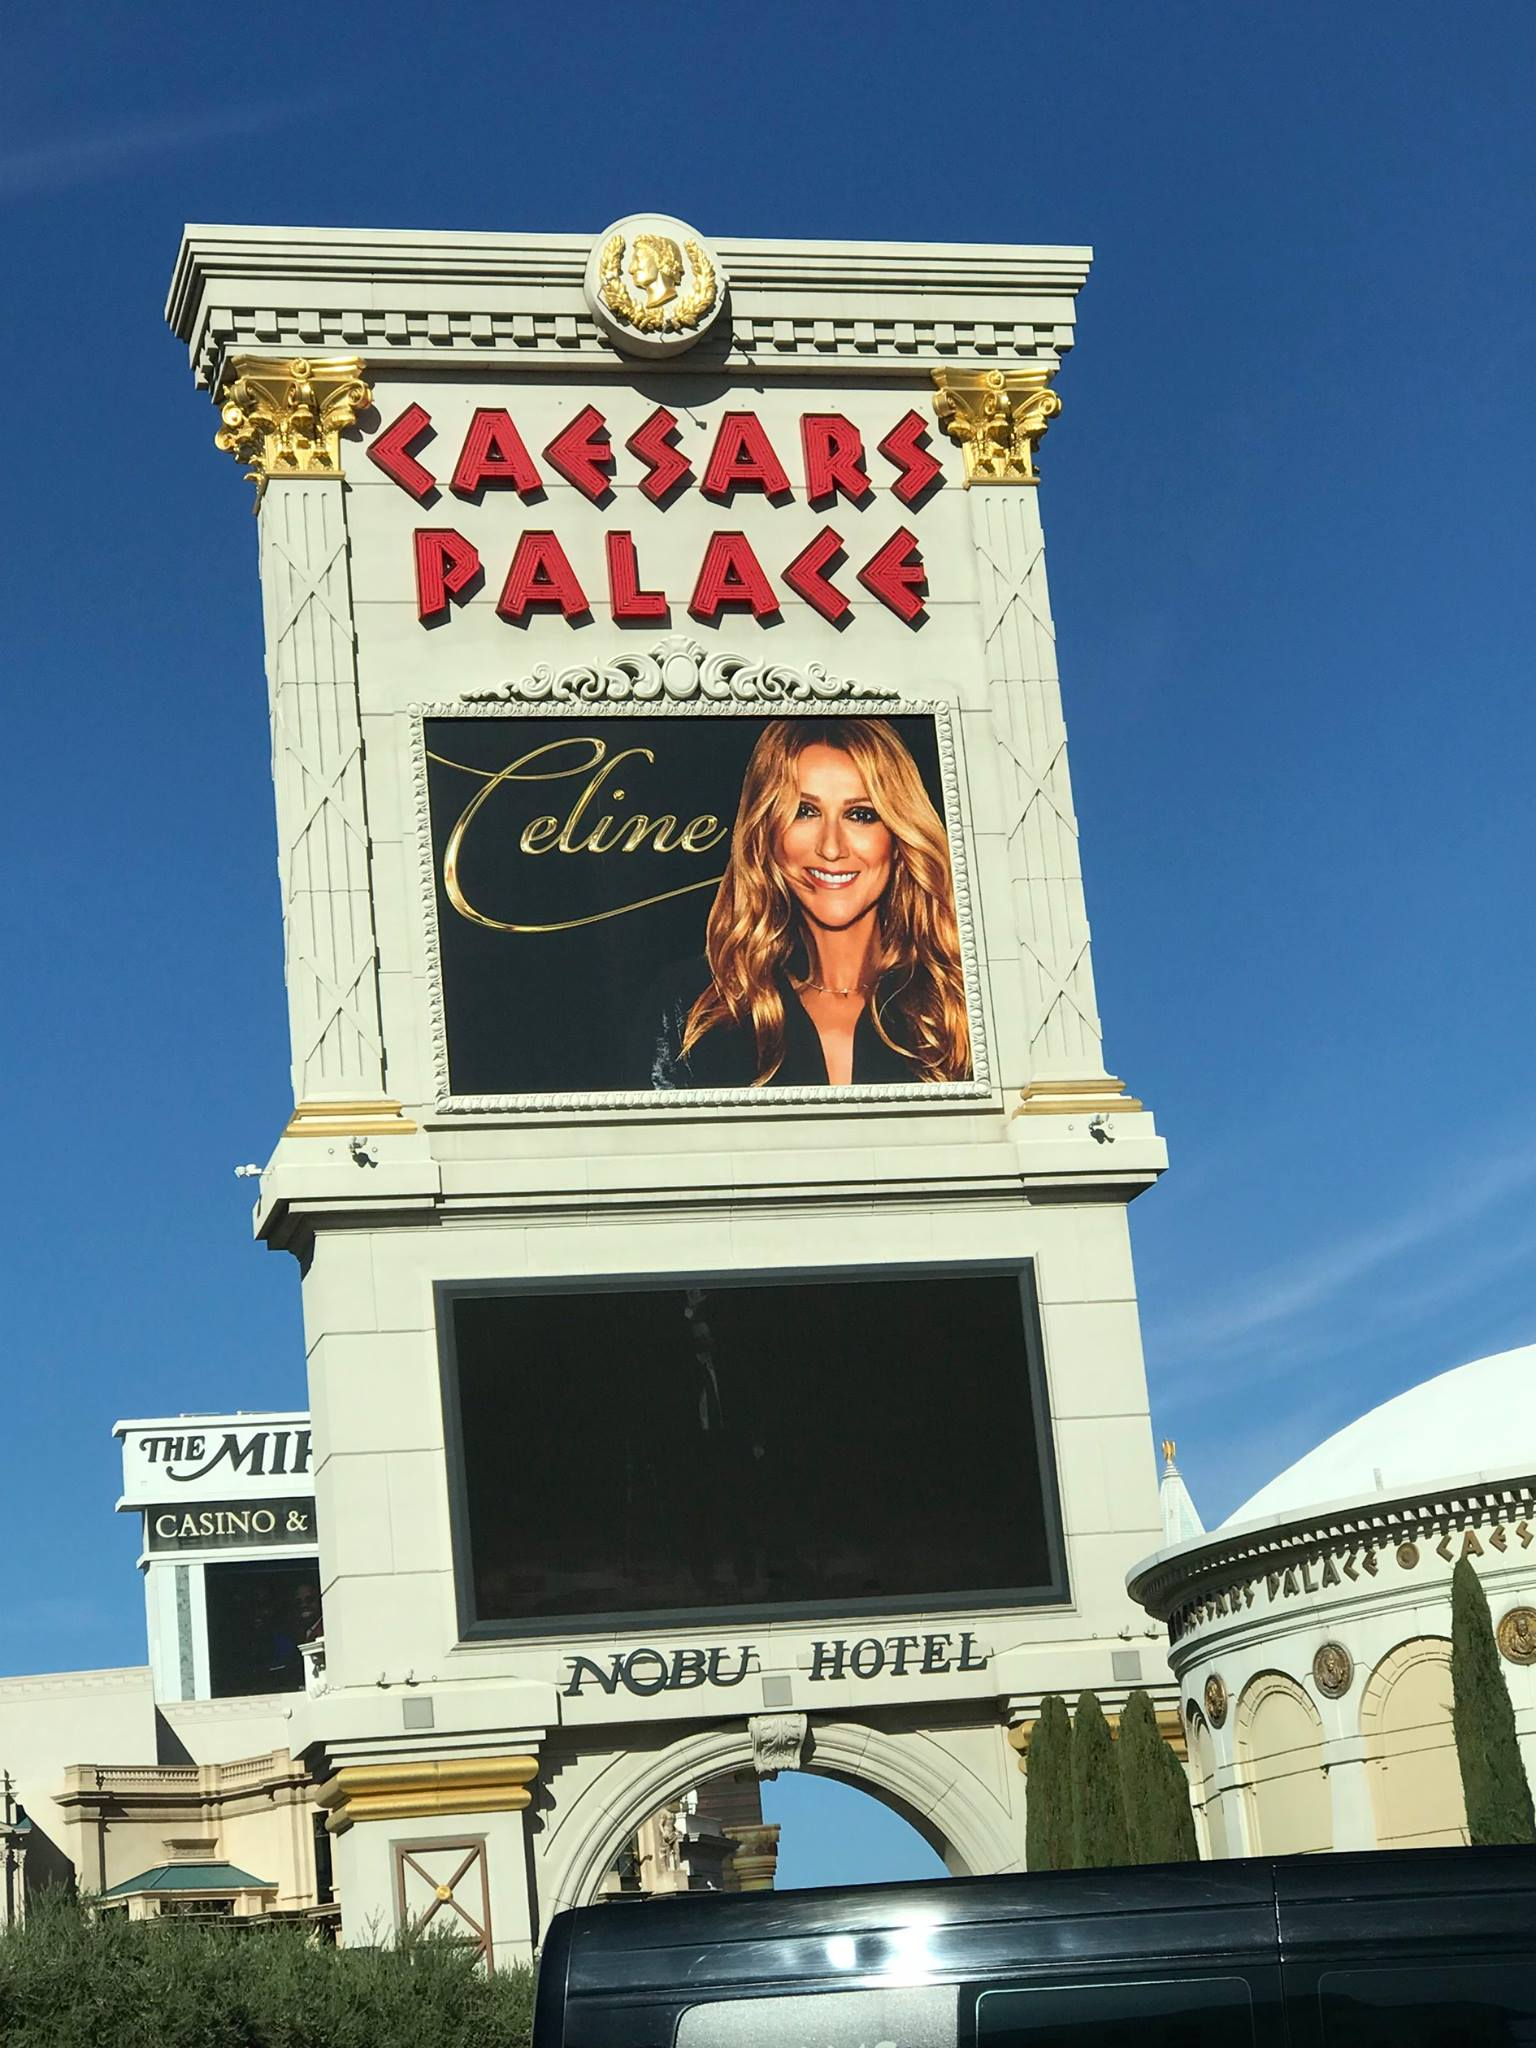 Photograph of Caesars Palace featuring Celine